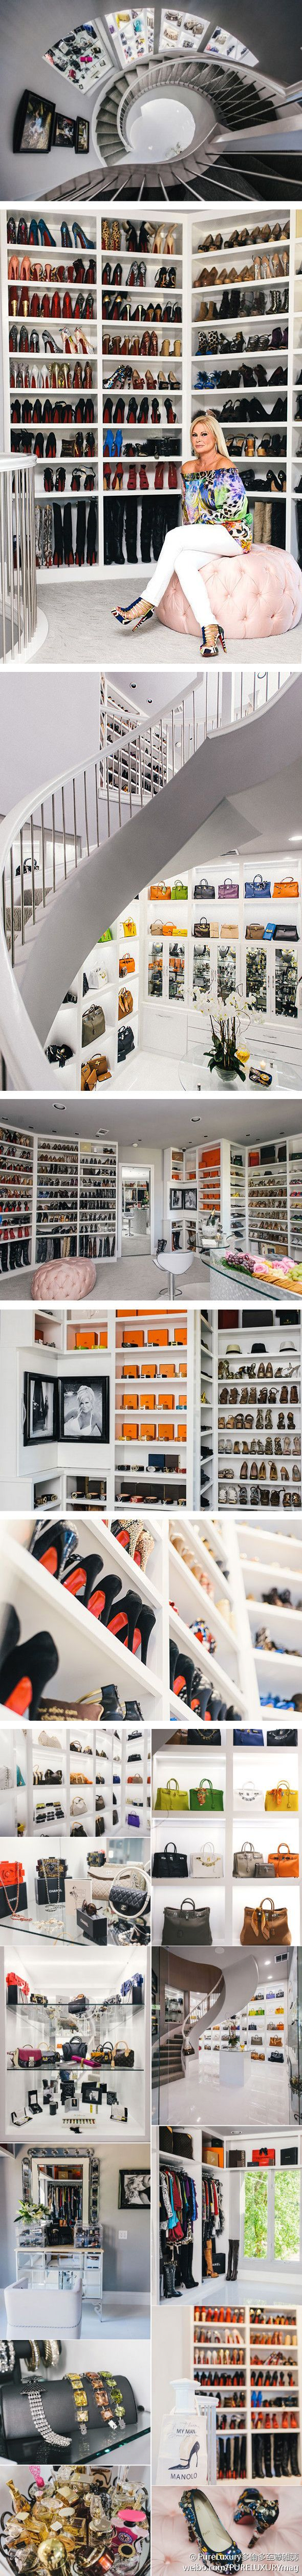 Theresa Roemer's Fabulously Luxurious Closet - Pure Luxury Magazine - ShazB